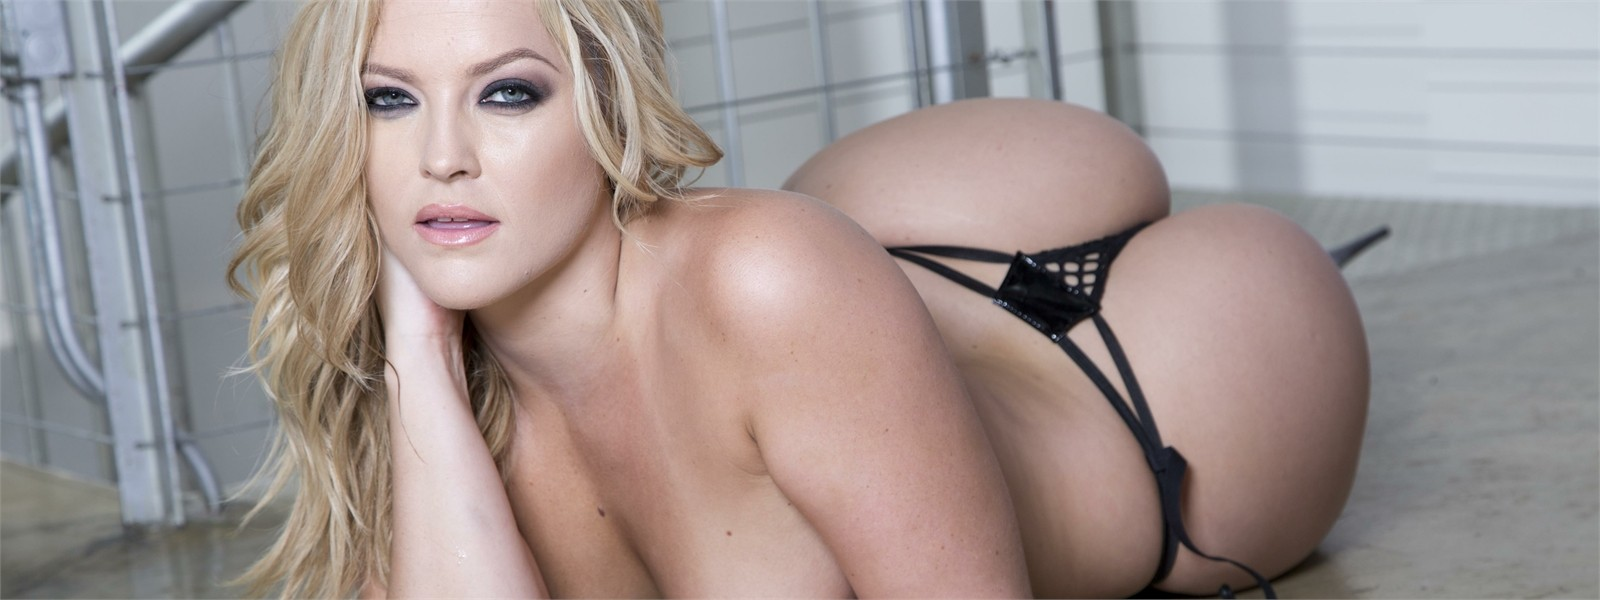 Watch scenes from Alexis Texas.